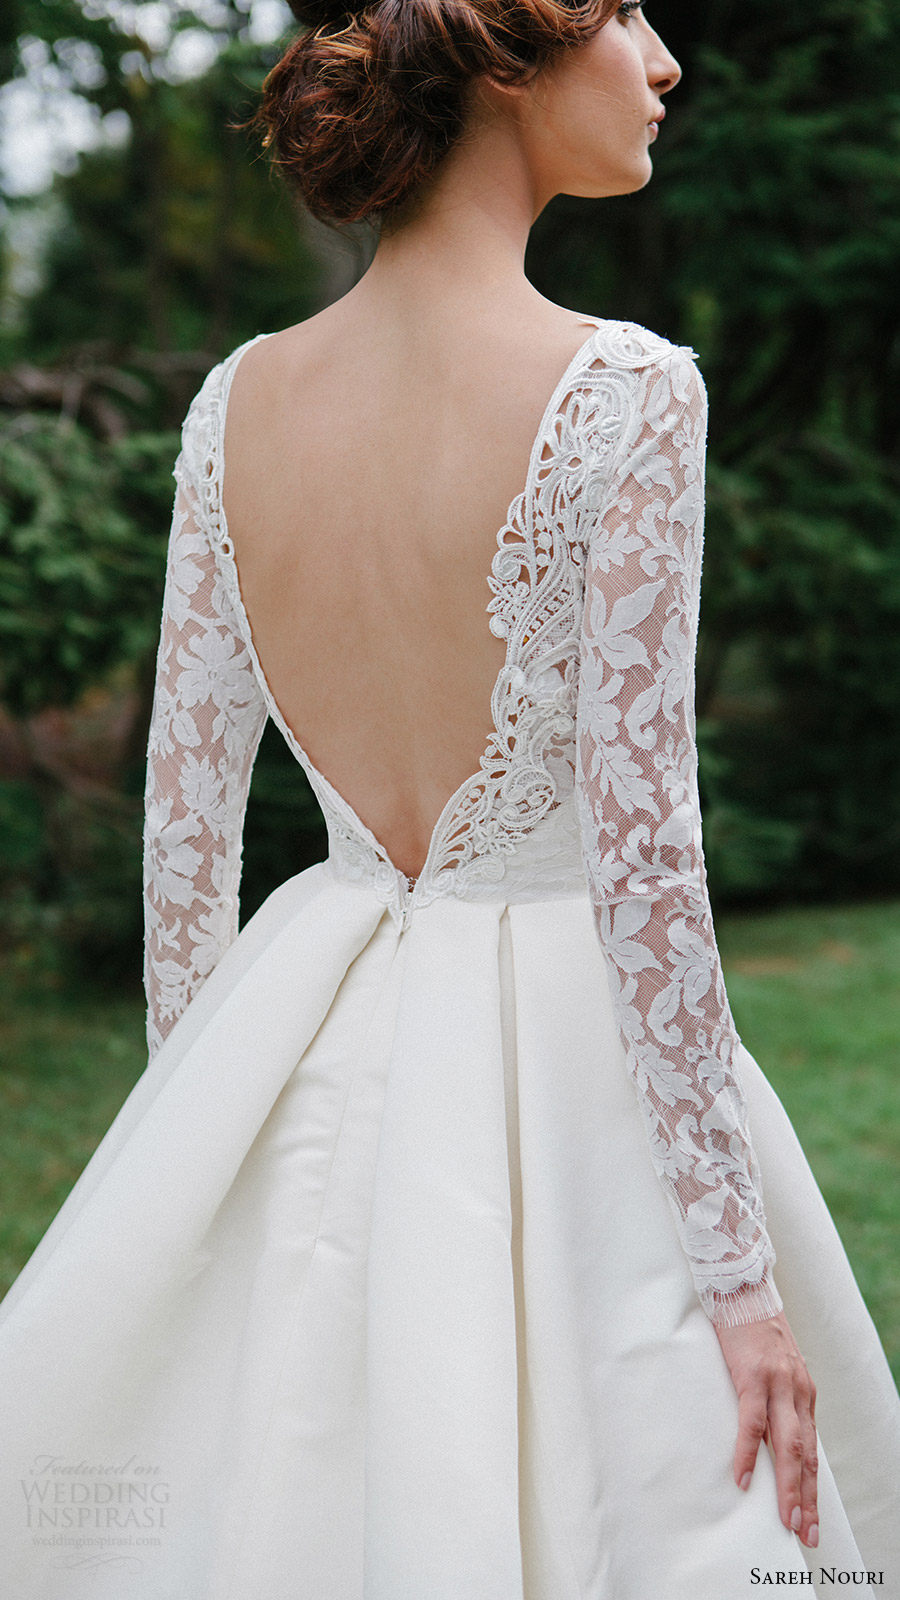 wedding dresses that cover arms photo - 1